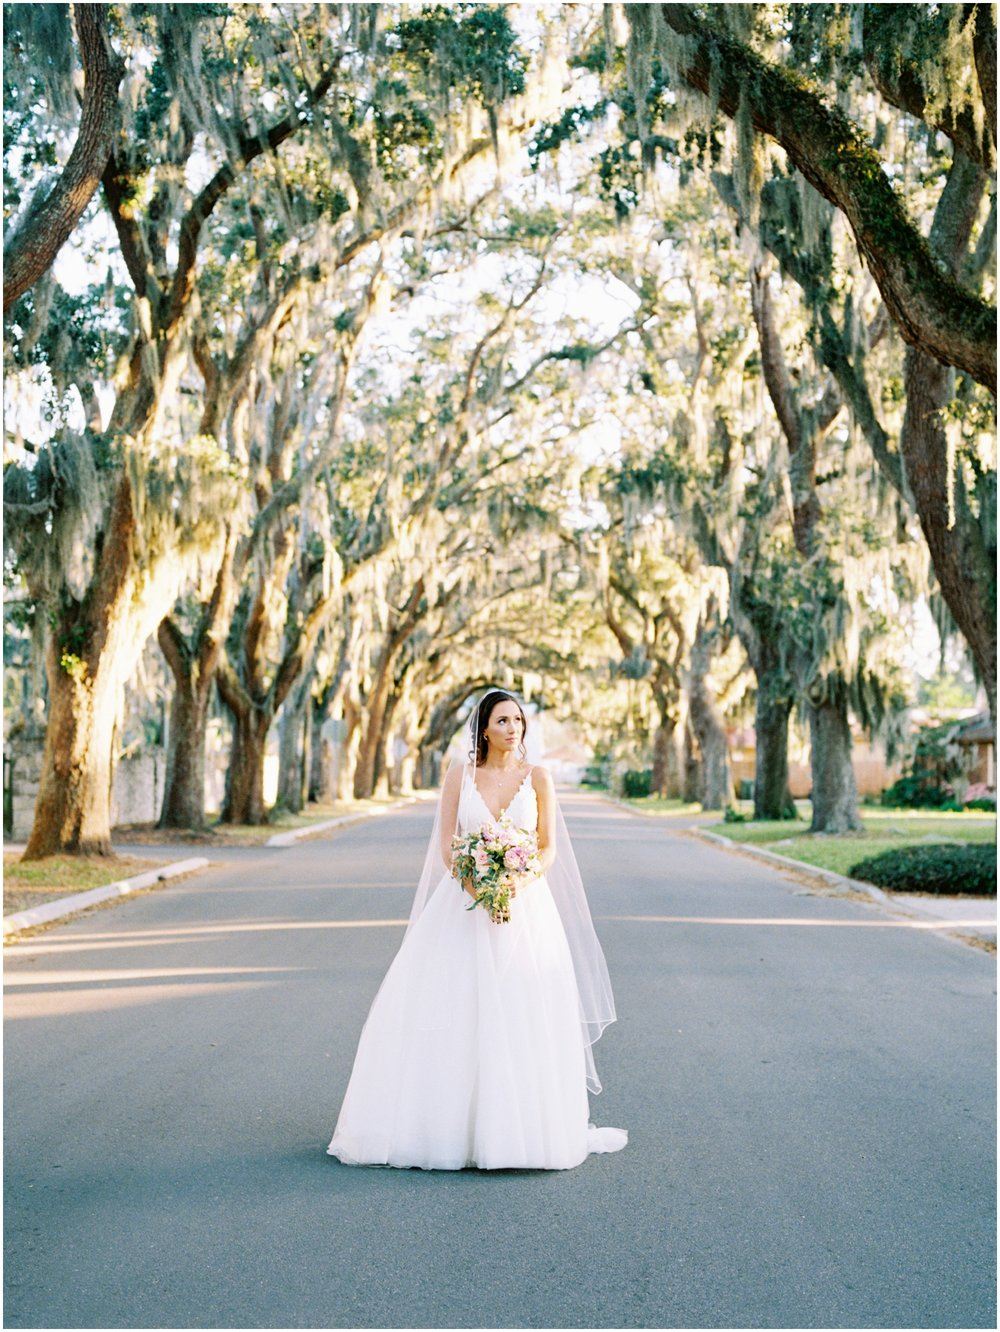 Lisa Silva Photography -Bridal Portrait Session in St. Augustine, Florida- Jacksonville and North East Florida Fine Art Film Photographer_0023.jpg